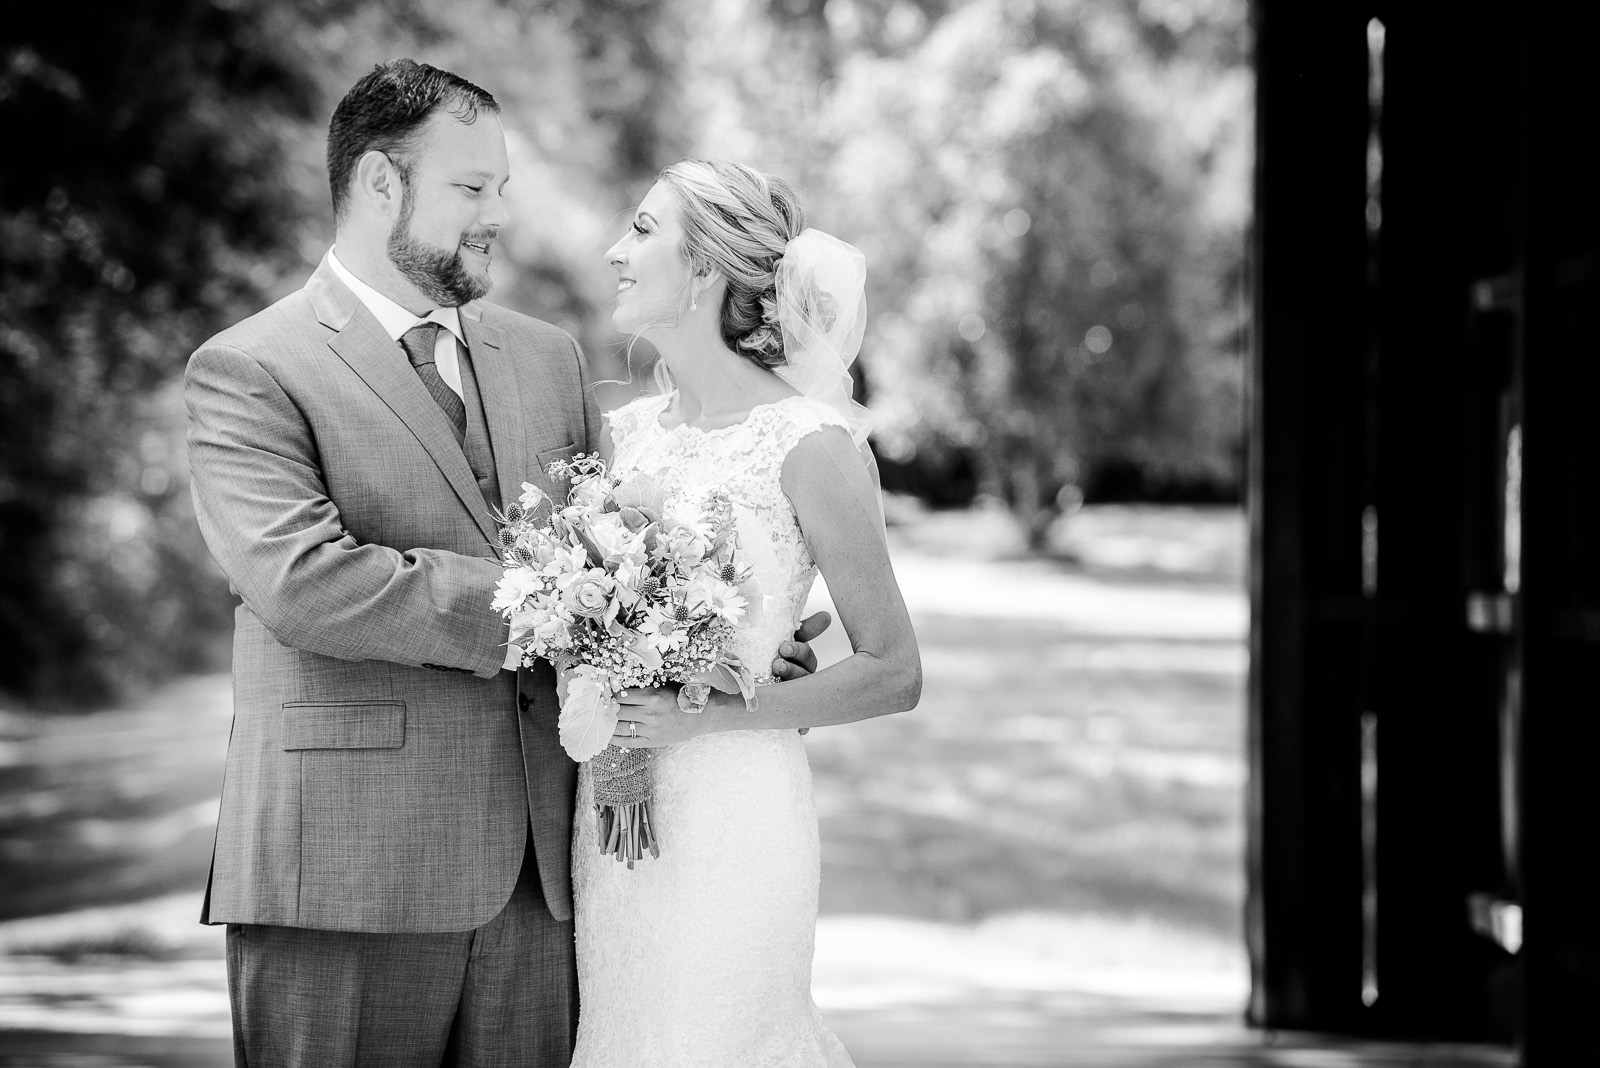 Eric_and_Christy_Photography_Blog_Wedding_Kelly_Matt-15